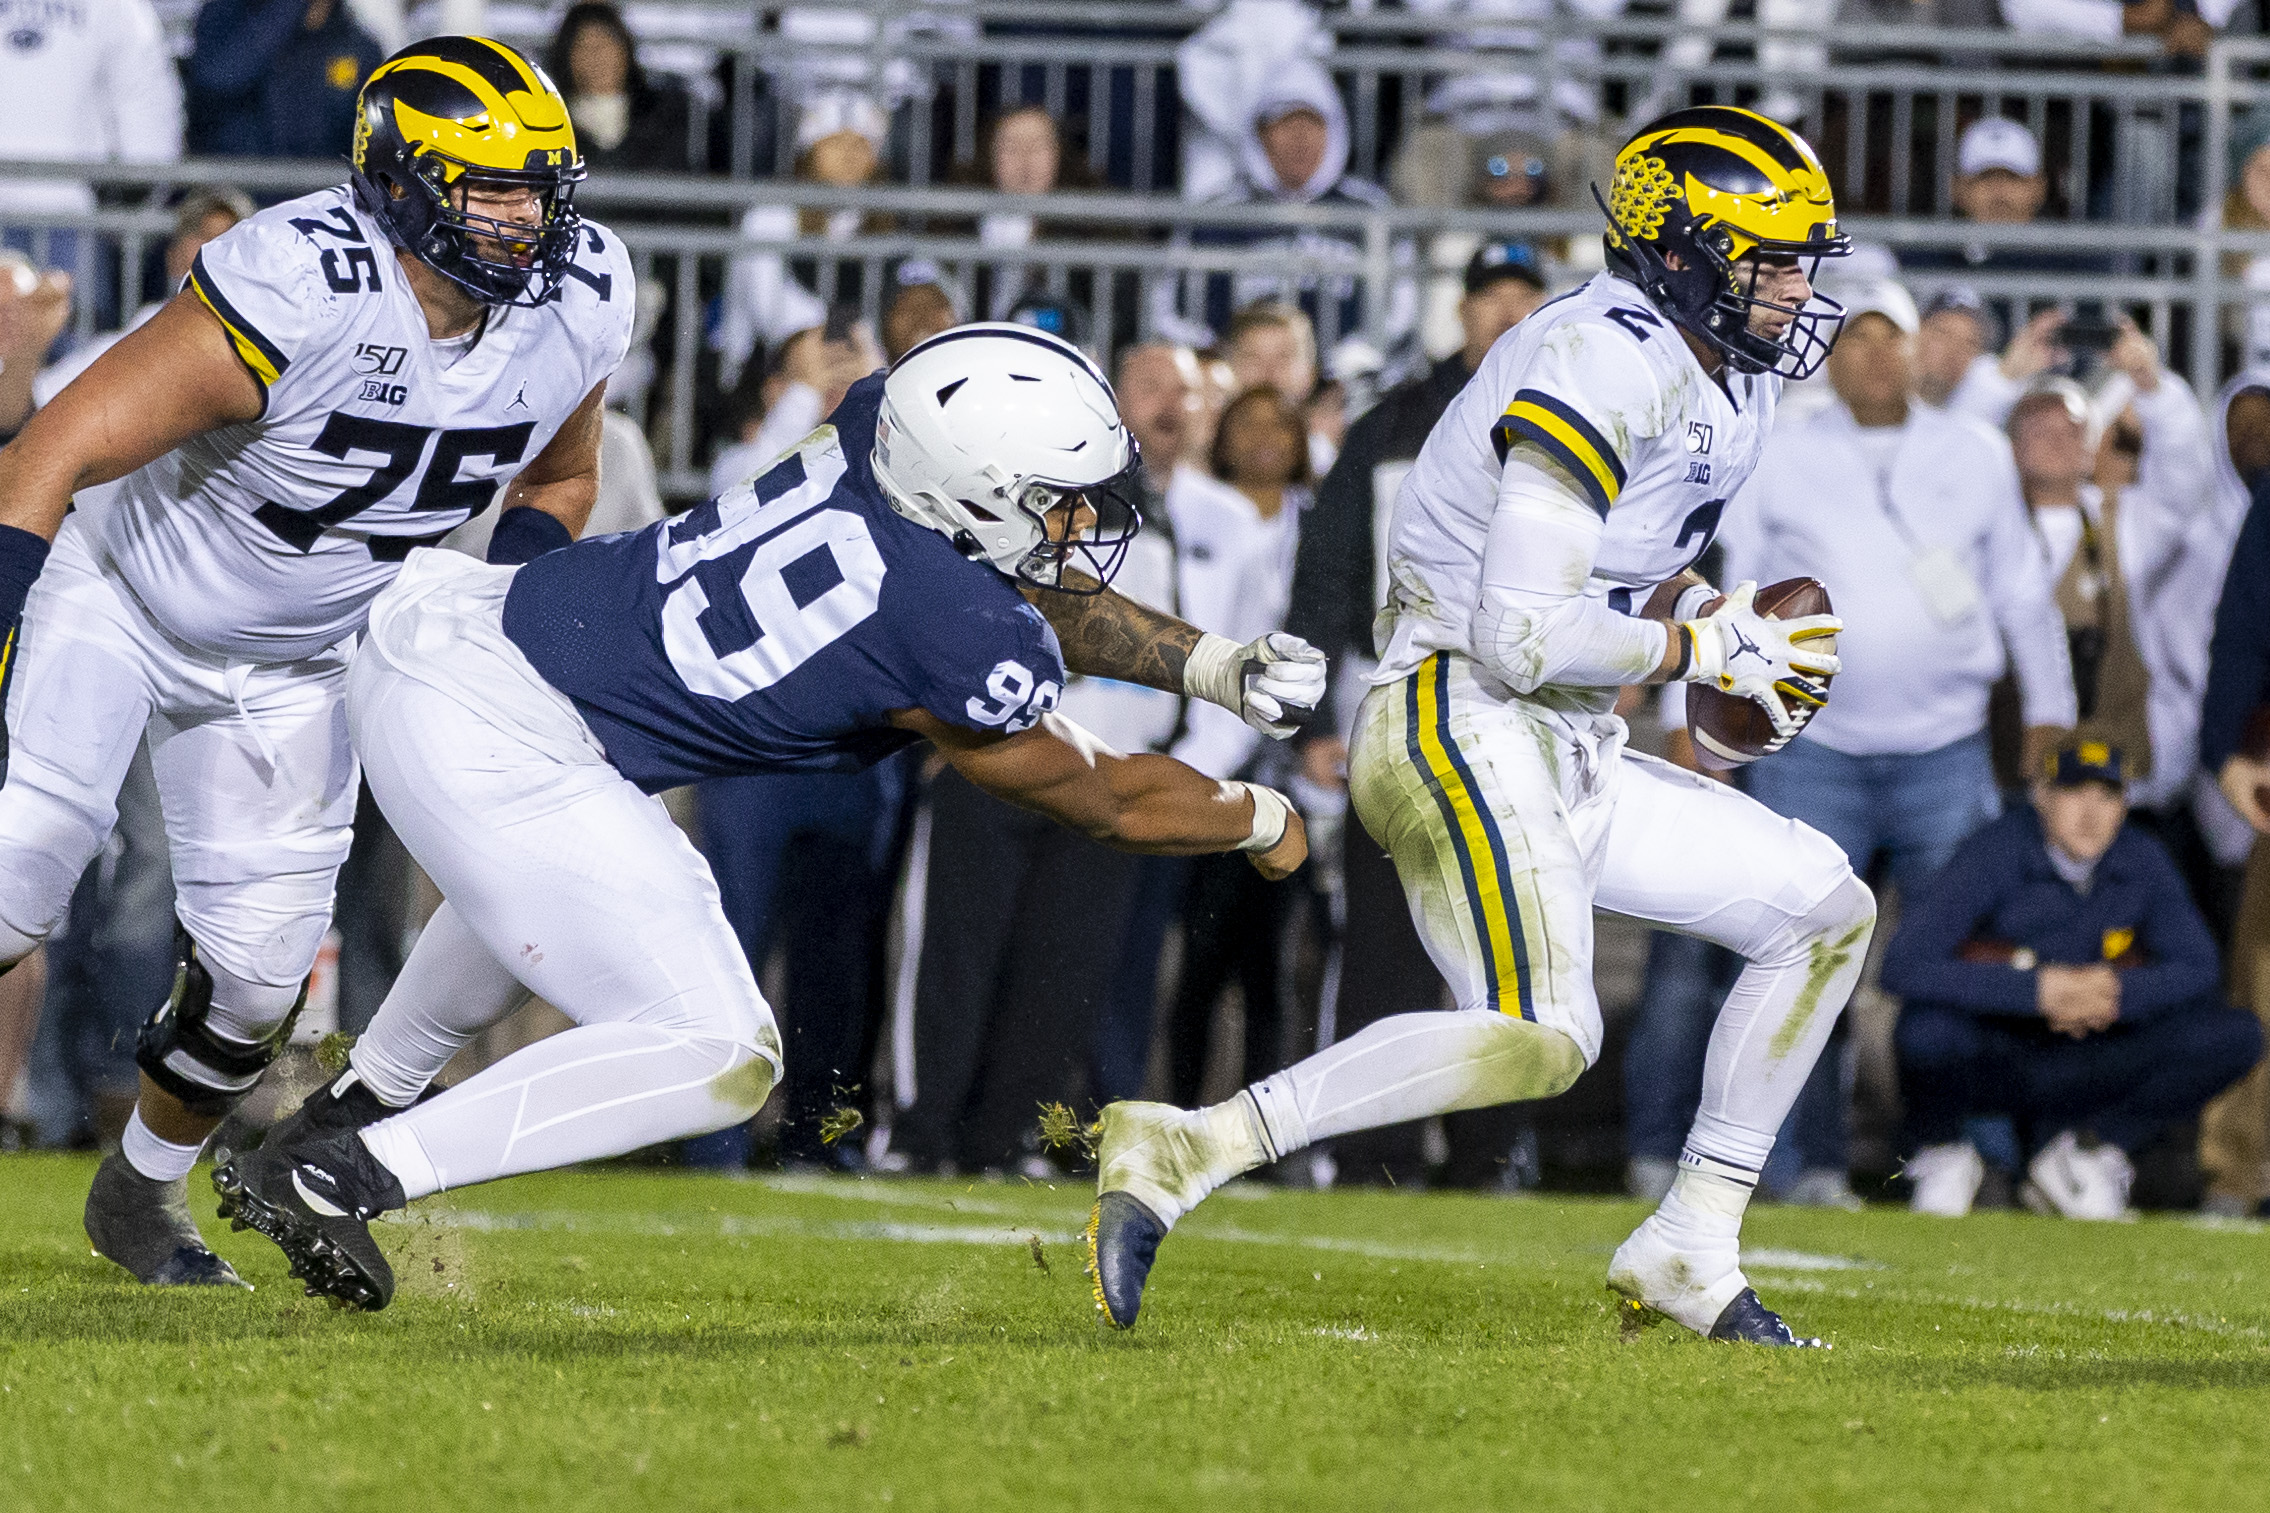 Penn State's 4 keys: The formula to vanquish Michigan State in East Lansing and move to 8-0